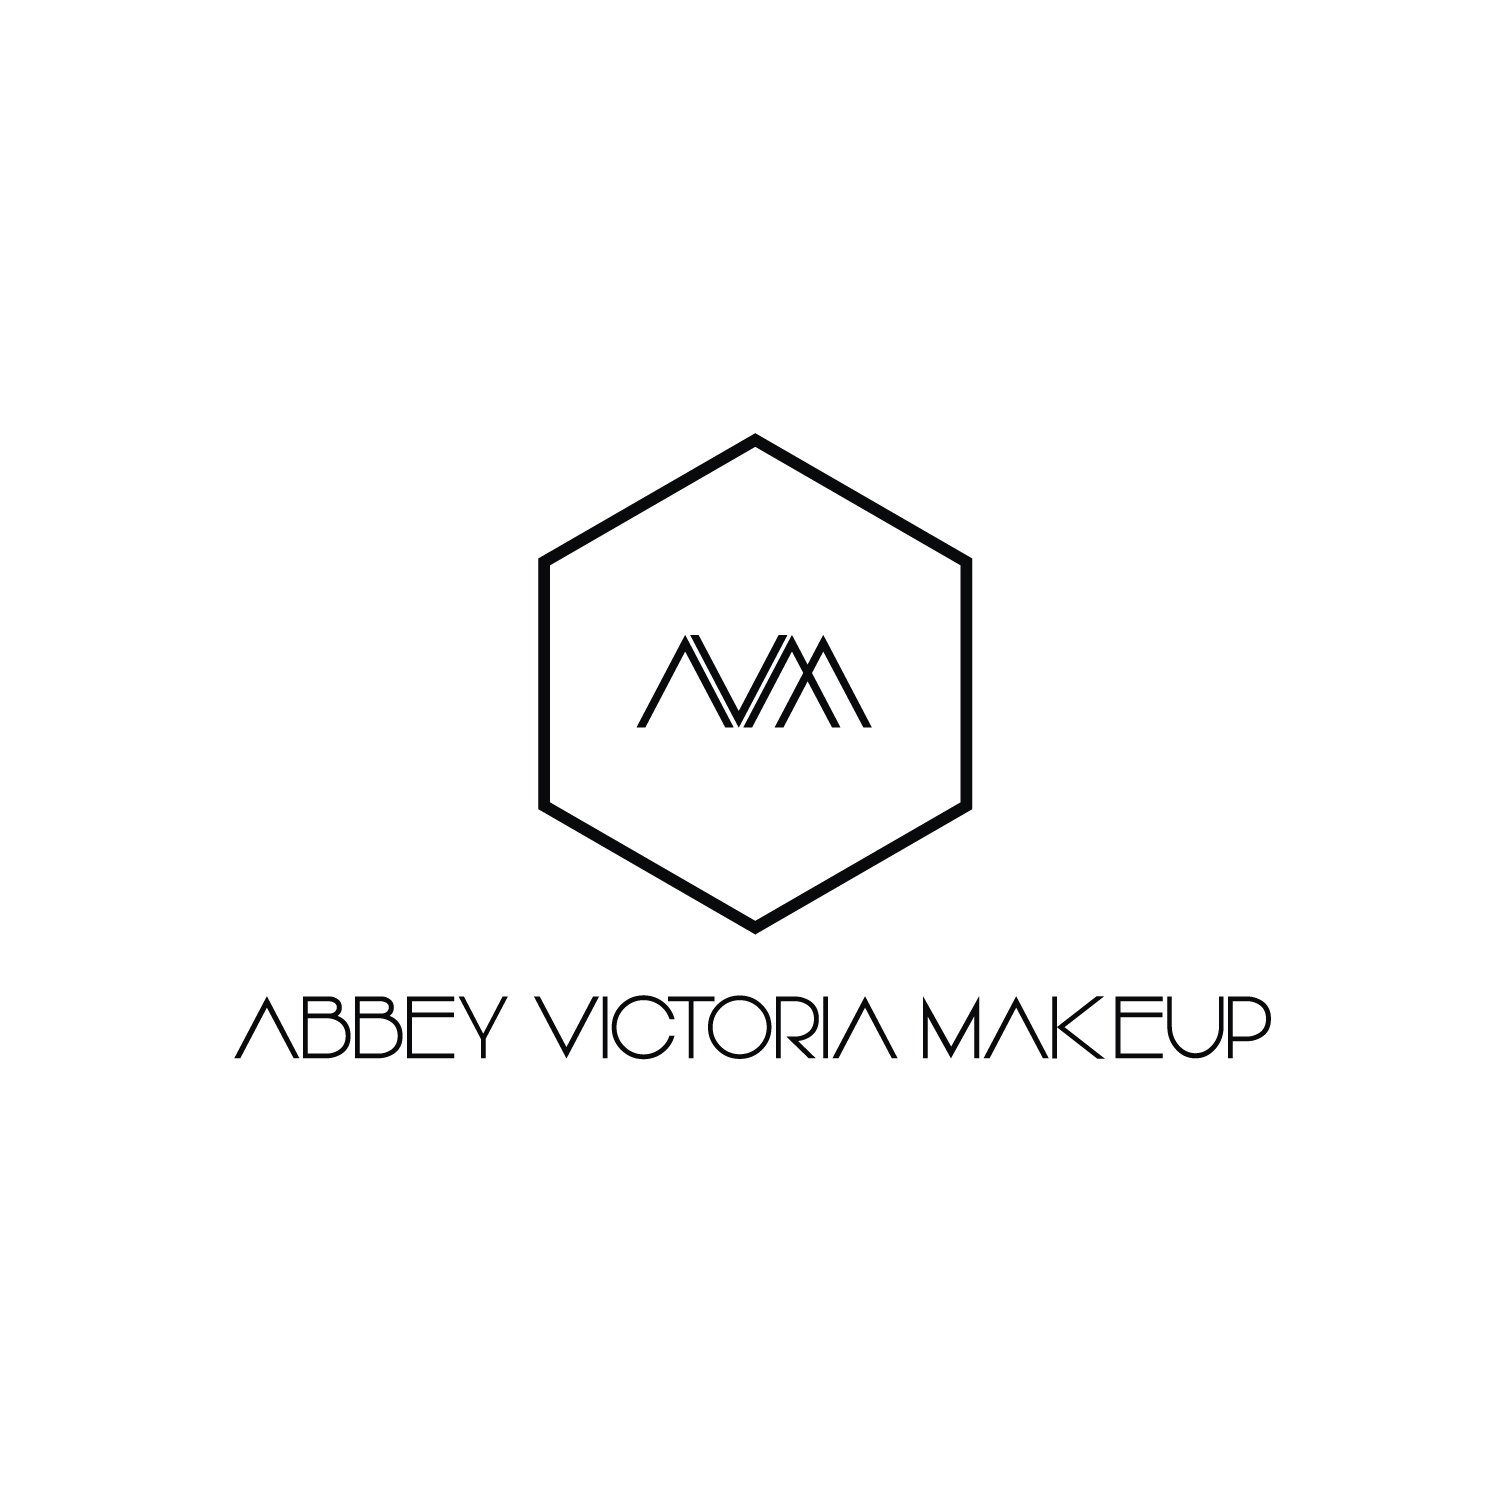 Abbey Victoria Makeup Logo Design by 	 arlaine cochon